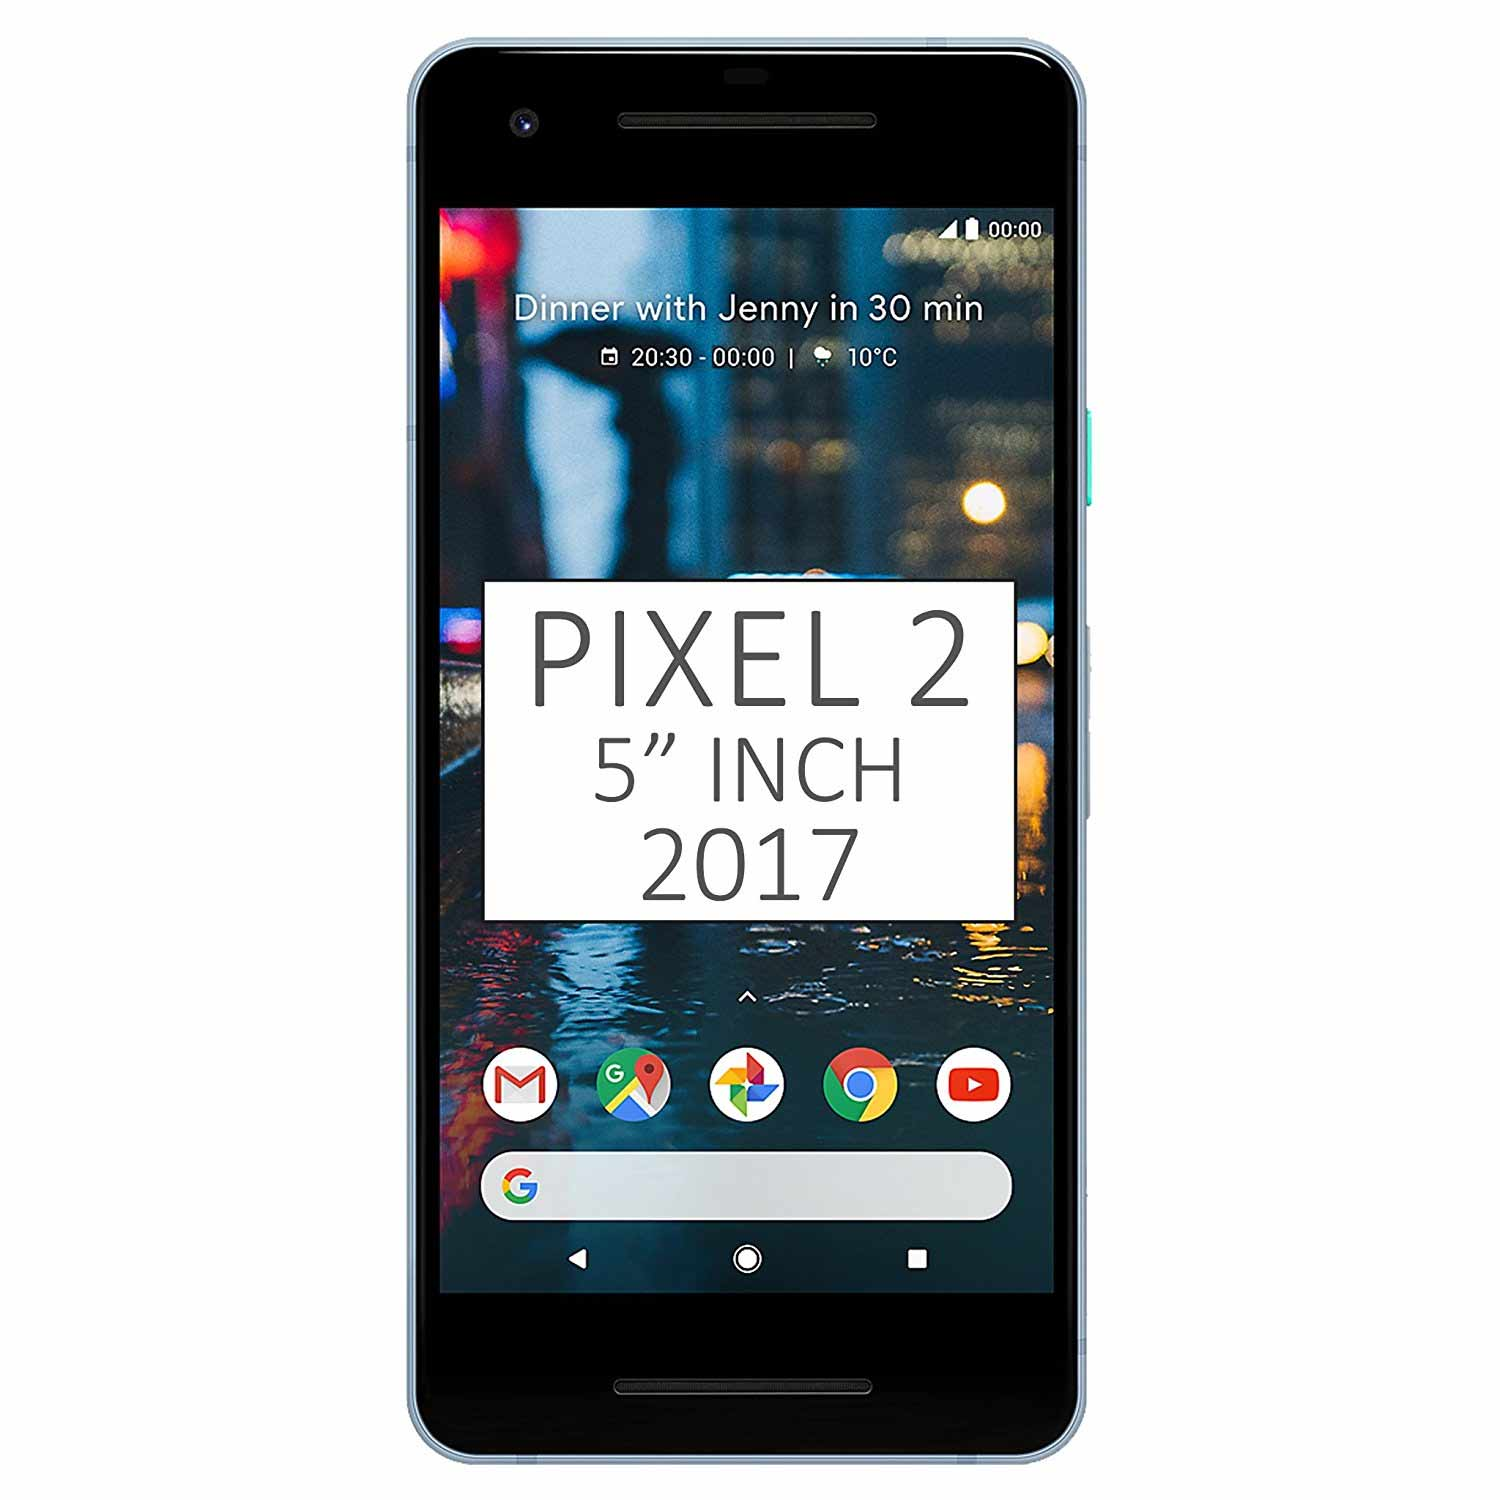 "New Google Pixel 2 64GB GSM + CDMA Factory Unlocked 5"" AMOLED Display 4GB RAM 12.2MP Smartphone - Kinda Blue"